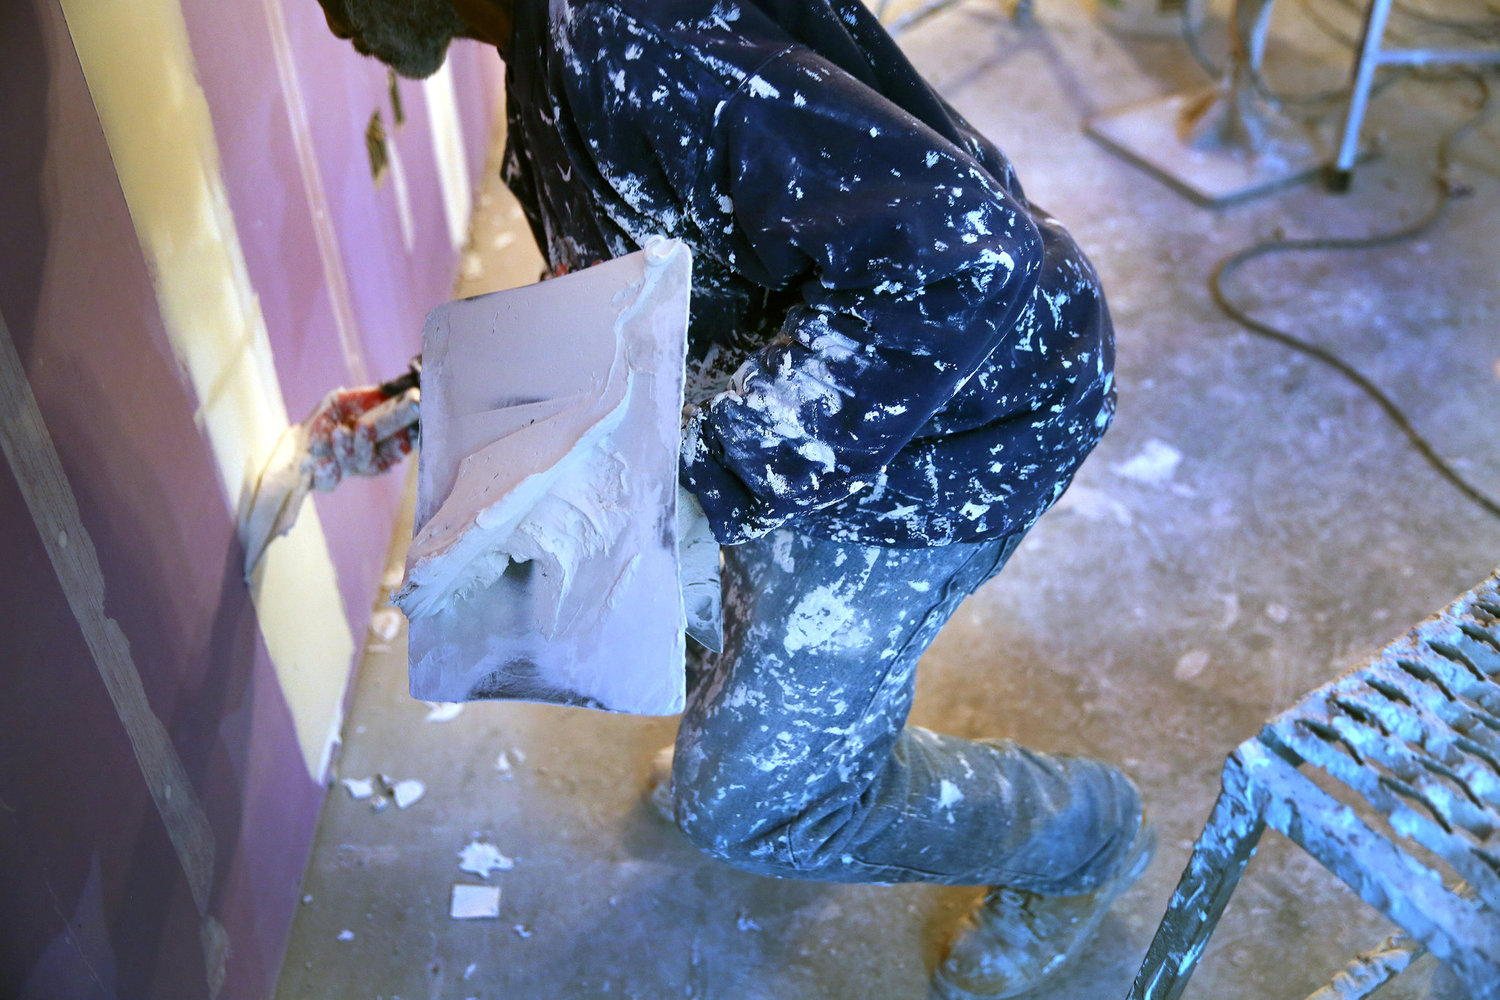 A worker applies joint compound to drywall.